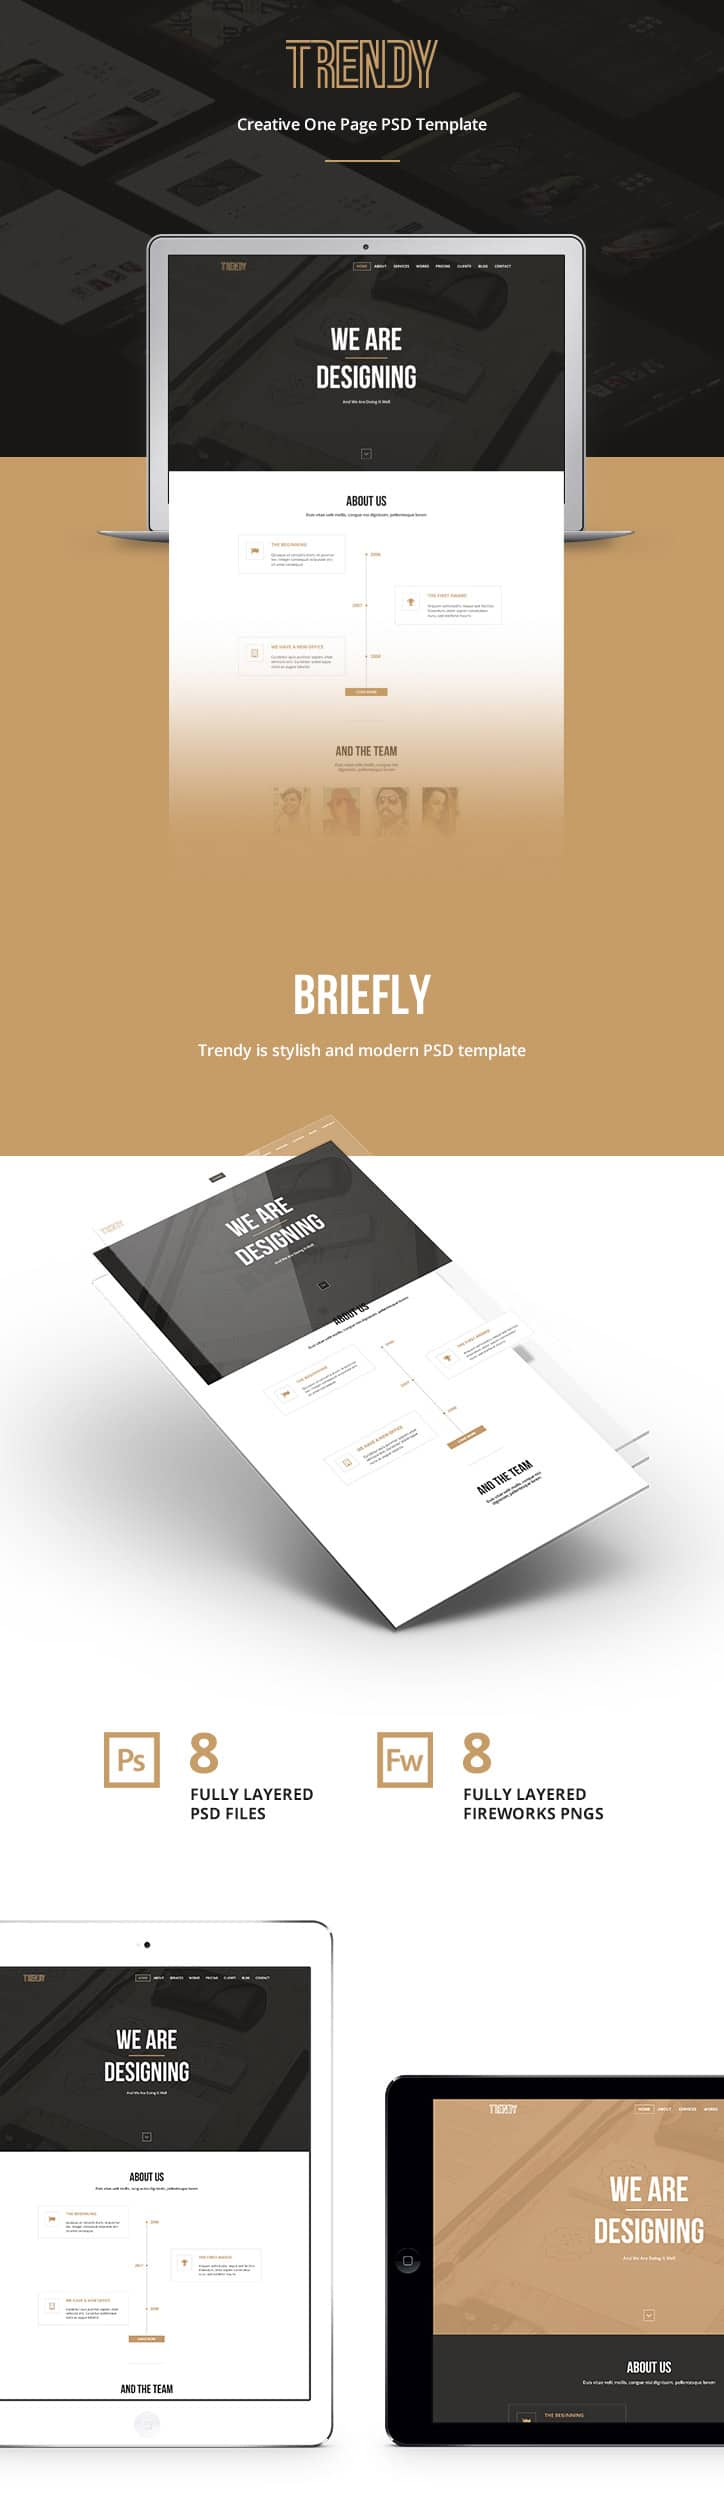 Trendy – Creative One Page Template PSD